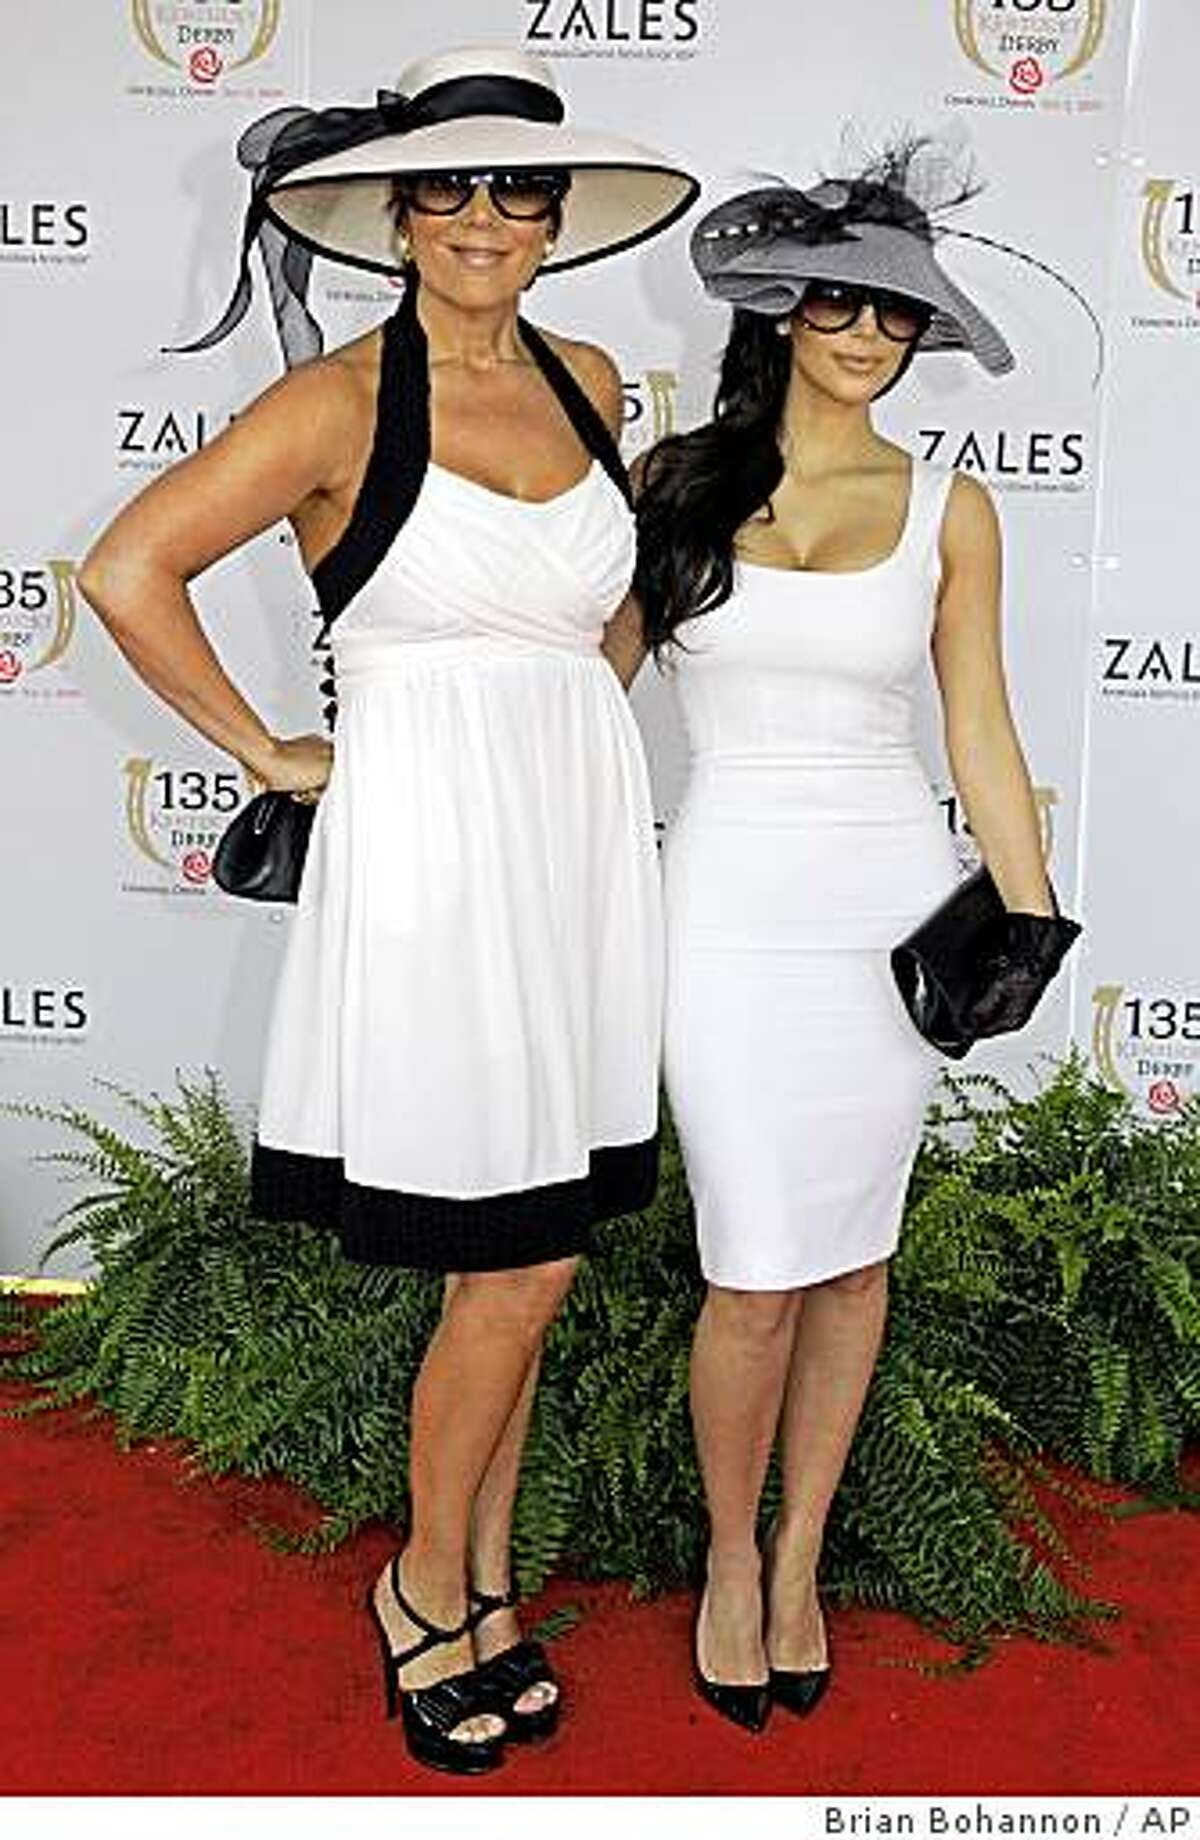 Kim Kardashian, right, poses with her mother Kris Jenner as they arrive at the 135th Kentucky Derby at Churchill Downs Saturday, May 2, 2009, in Louisville, Ky.